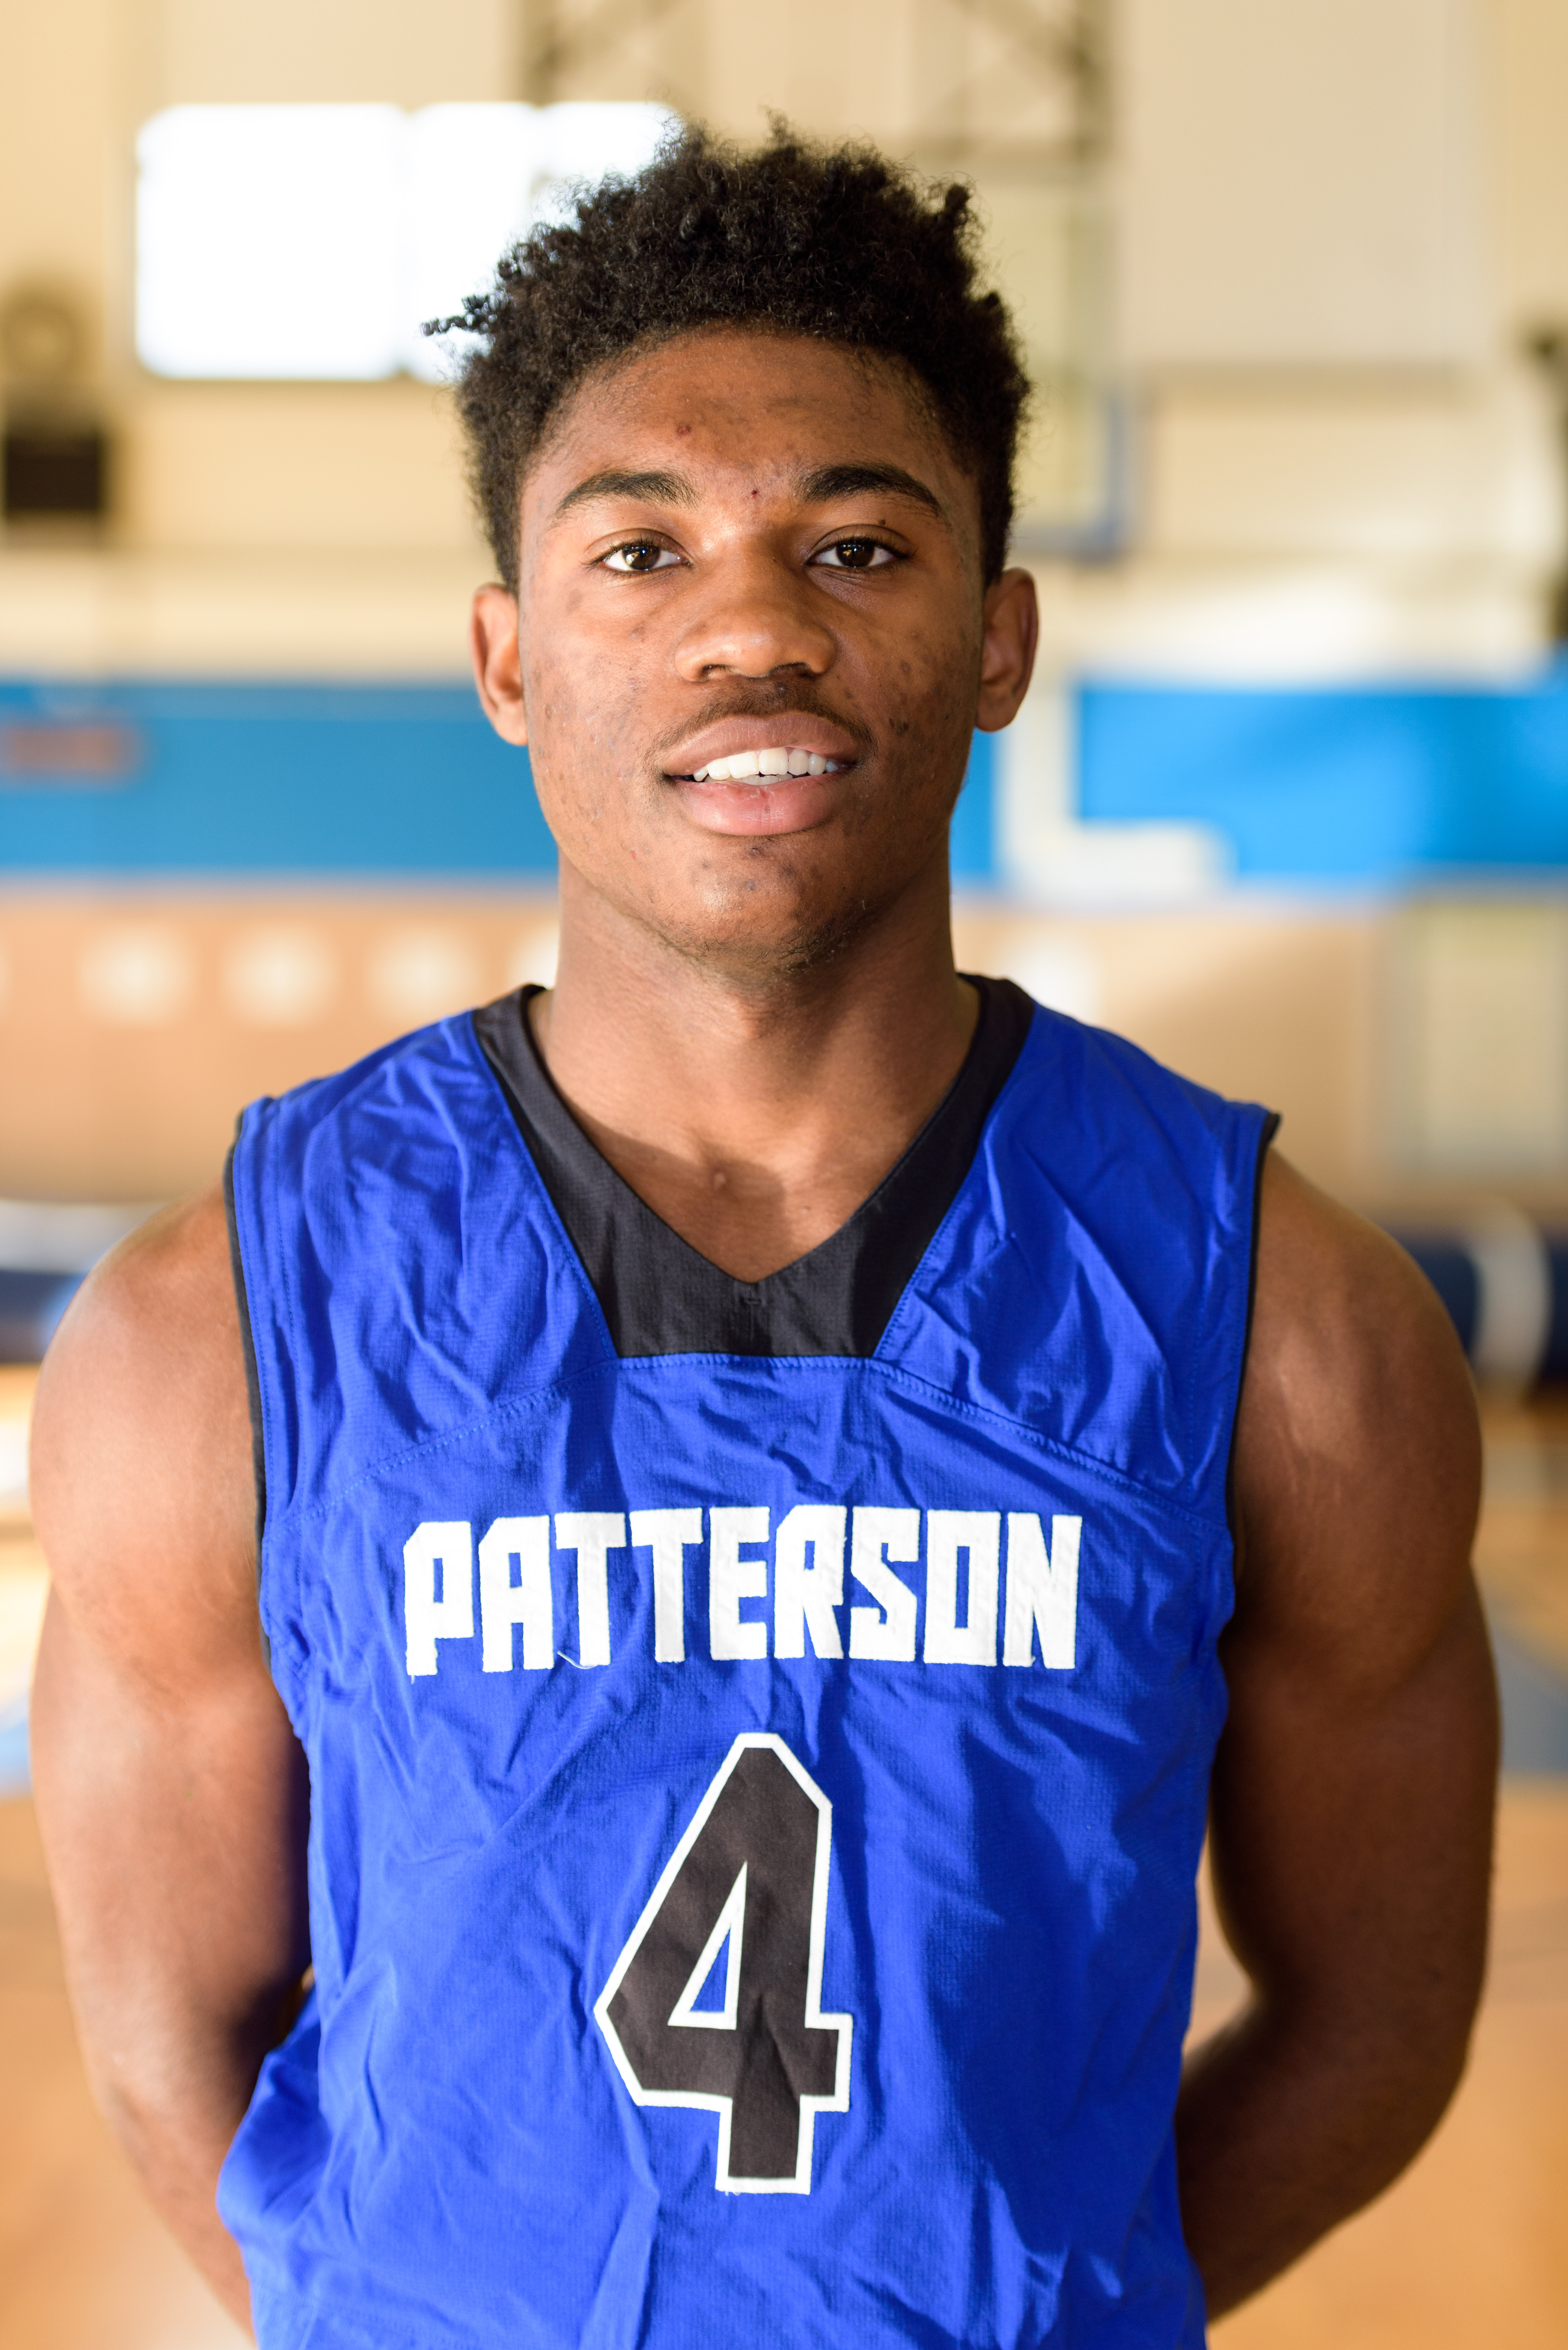 15 Roster Patterson High School Basketball